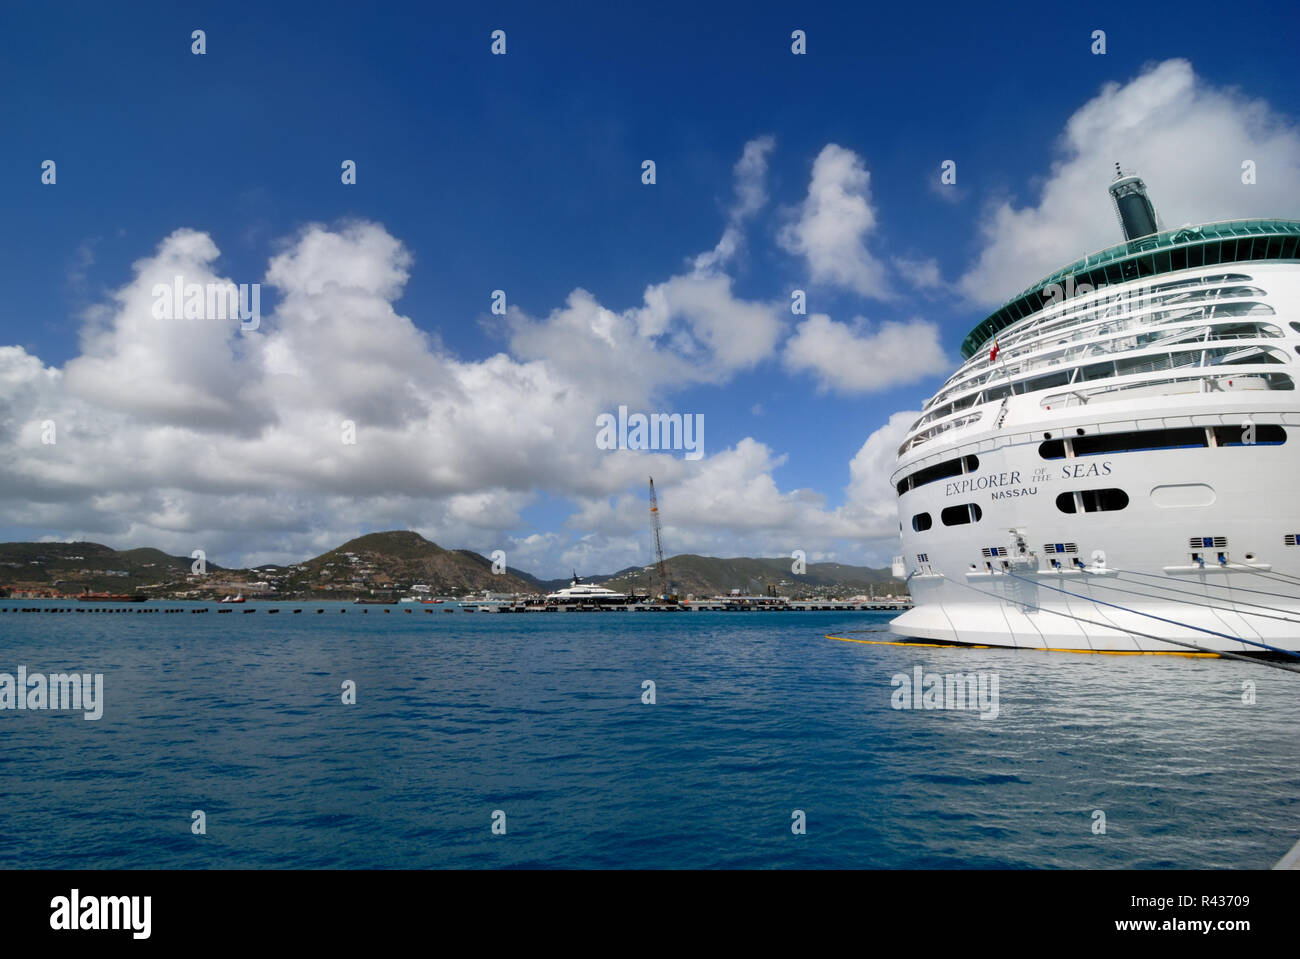 Royal Caribbean's Explorer of the Seas, docked at St. Maarten. - Stock Image